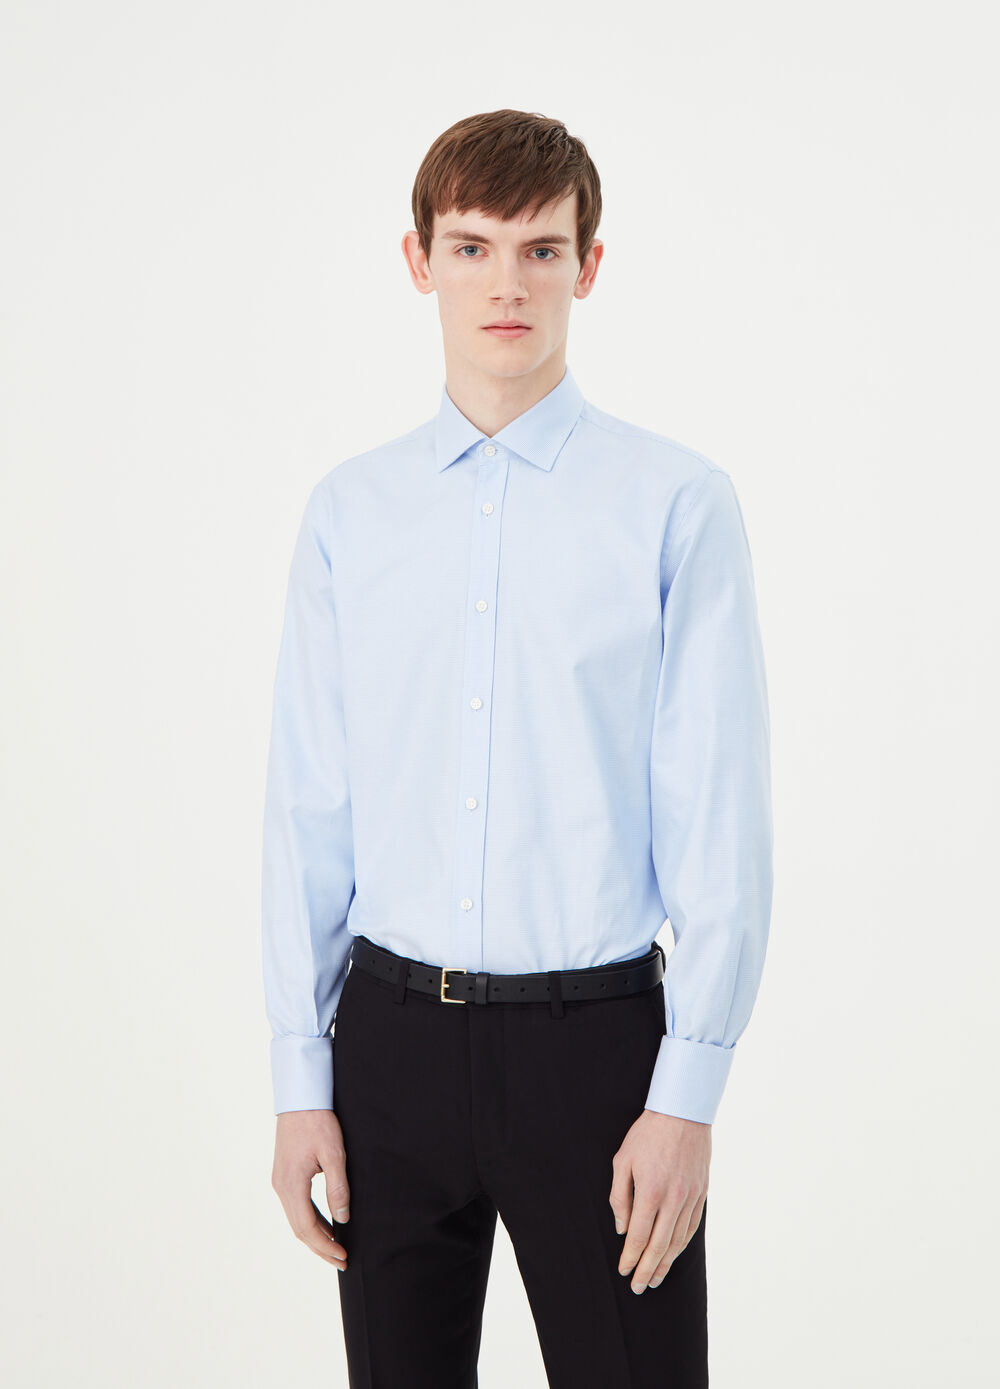 Charmeuse weave shirt with semi cut-away collar